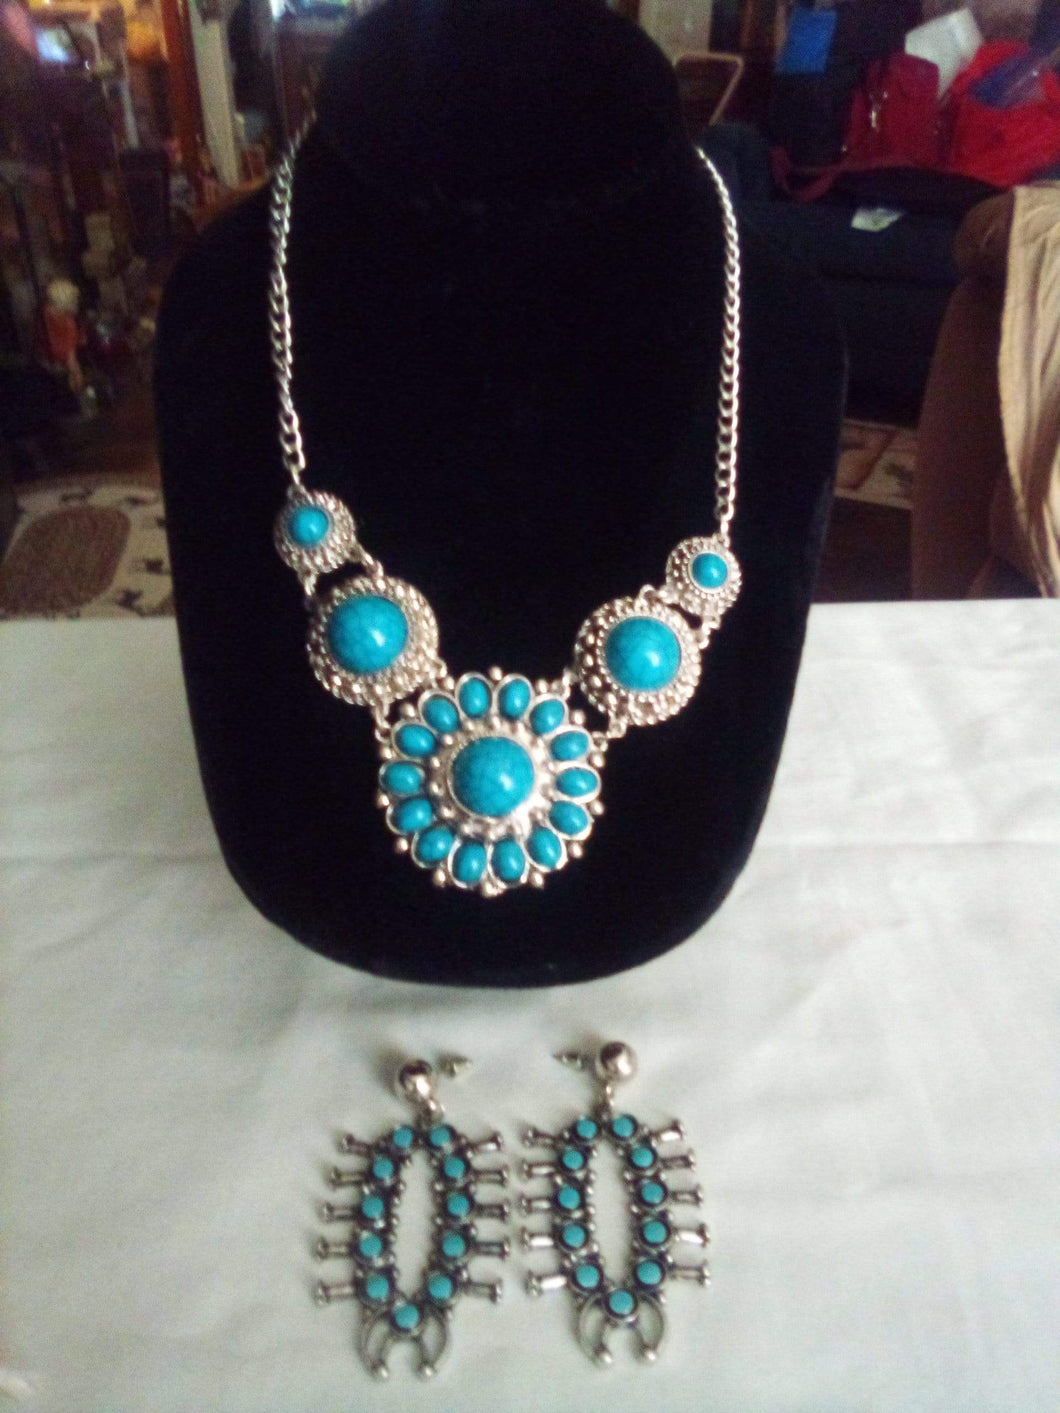 A beautiful turquoise necklace and earring set - B&P'sringsnthings